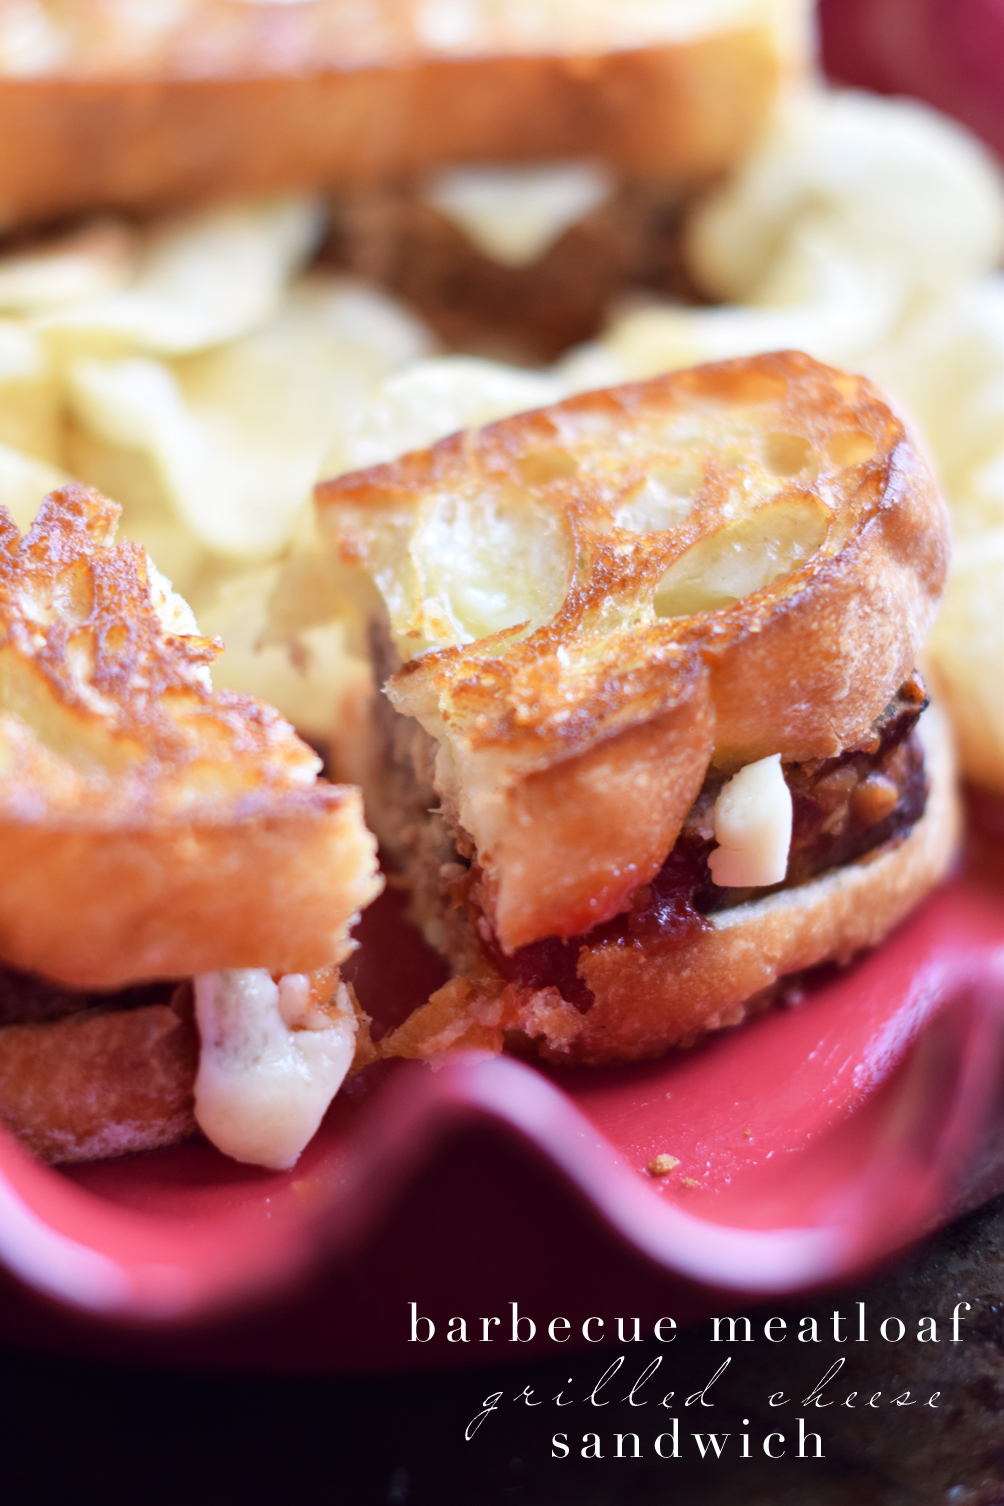 barbecue meatloaf grilled cheese sandwich recipe - one brass fox